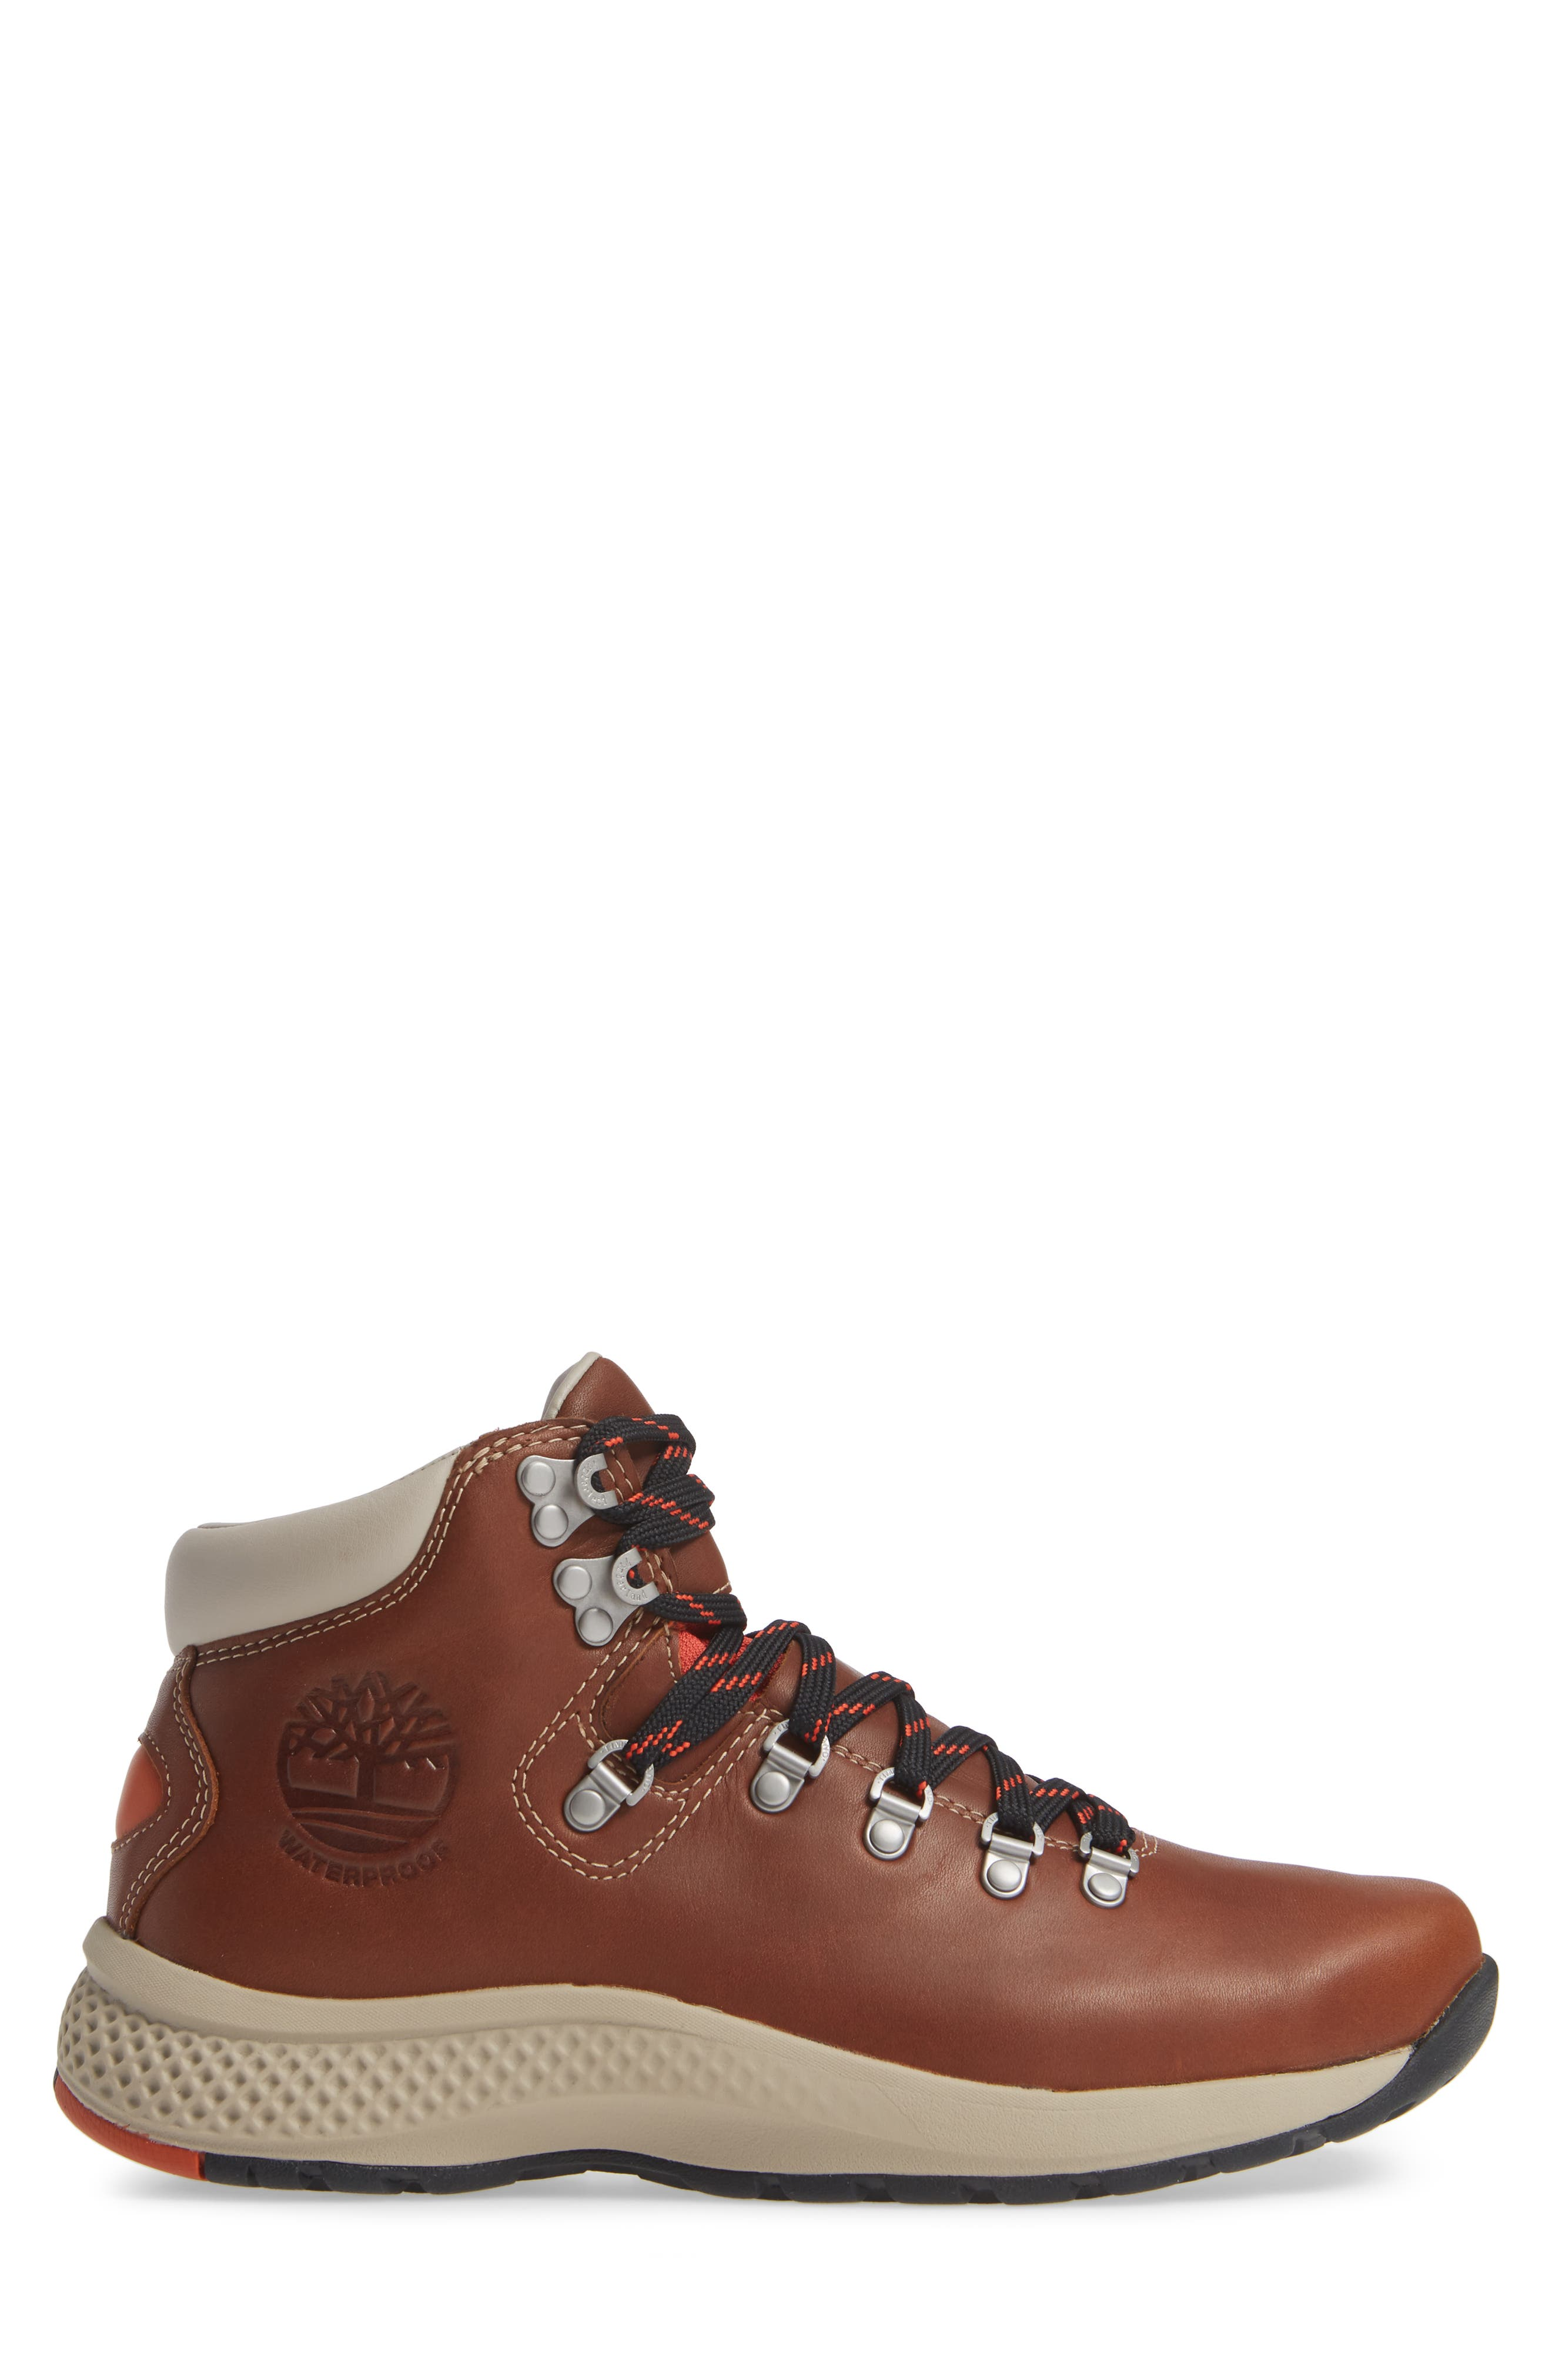 1978 Aerocore Waterproof Hiking Boot,                             Alternate thumbnail 3, color,                             BROWN LEATHER